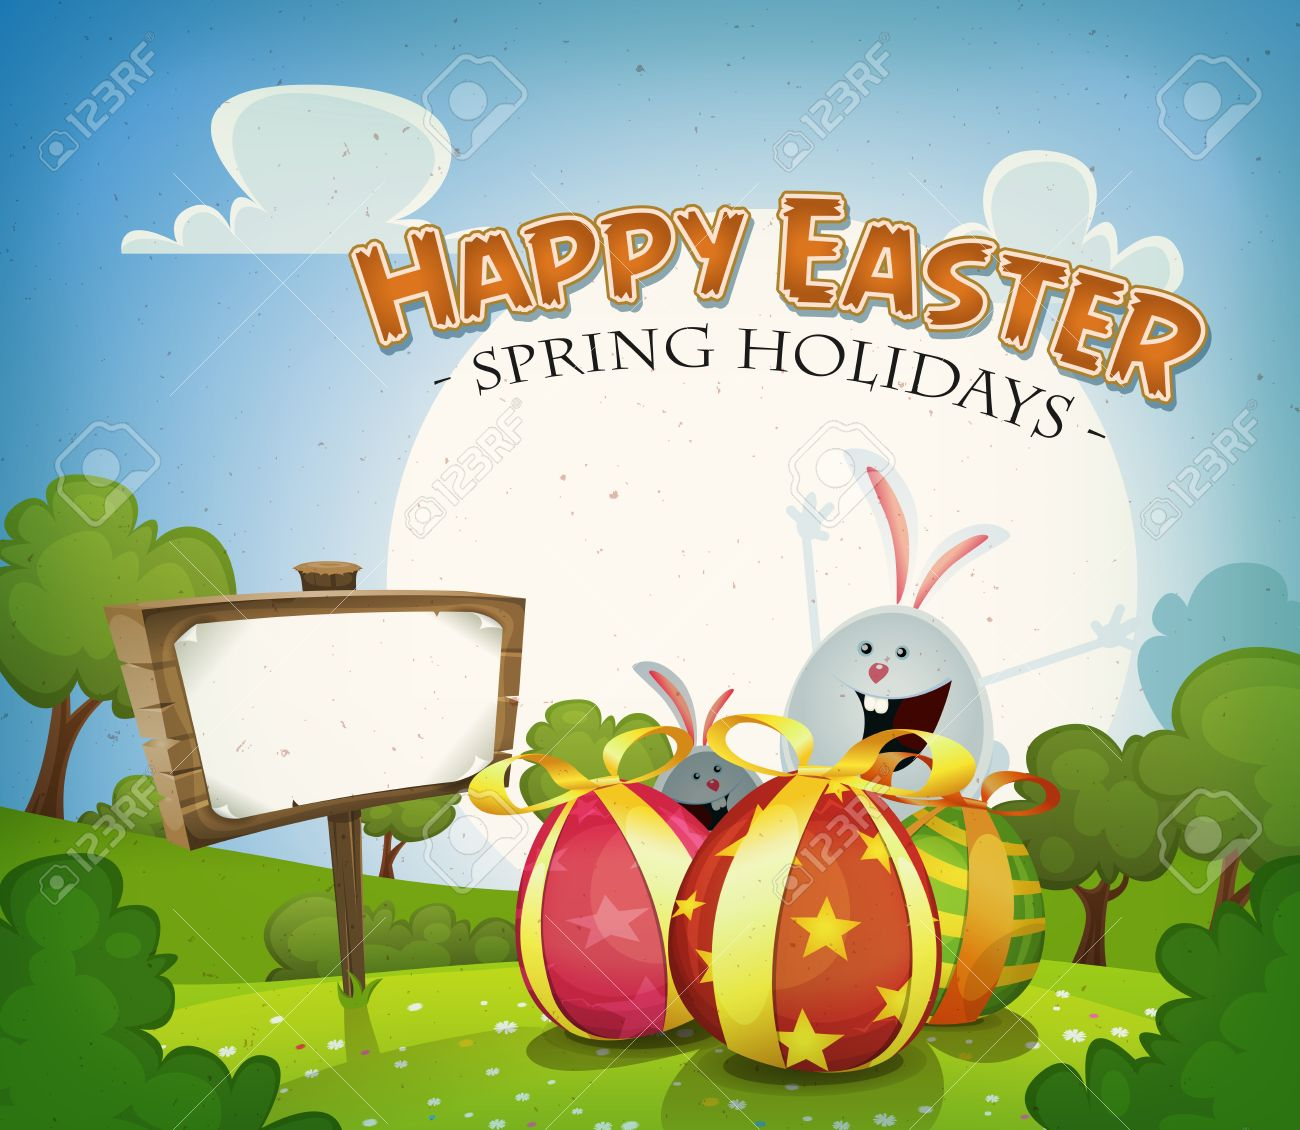 Illustration Of A Cartoon Happy Easter Holidays Background In Spring Or Summer Season With